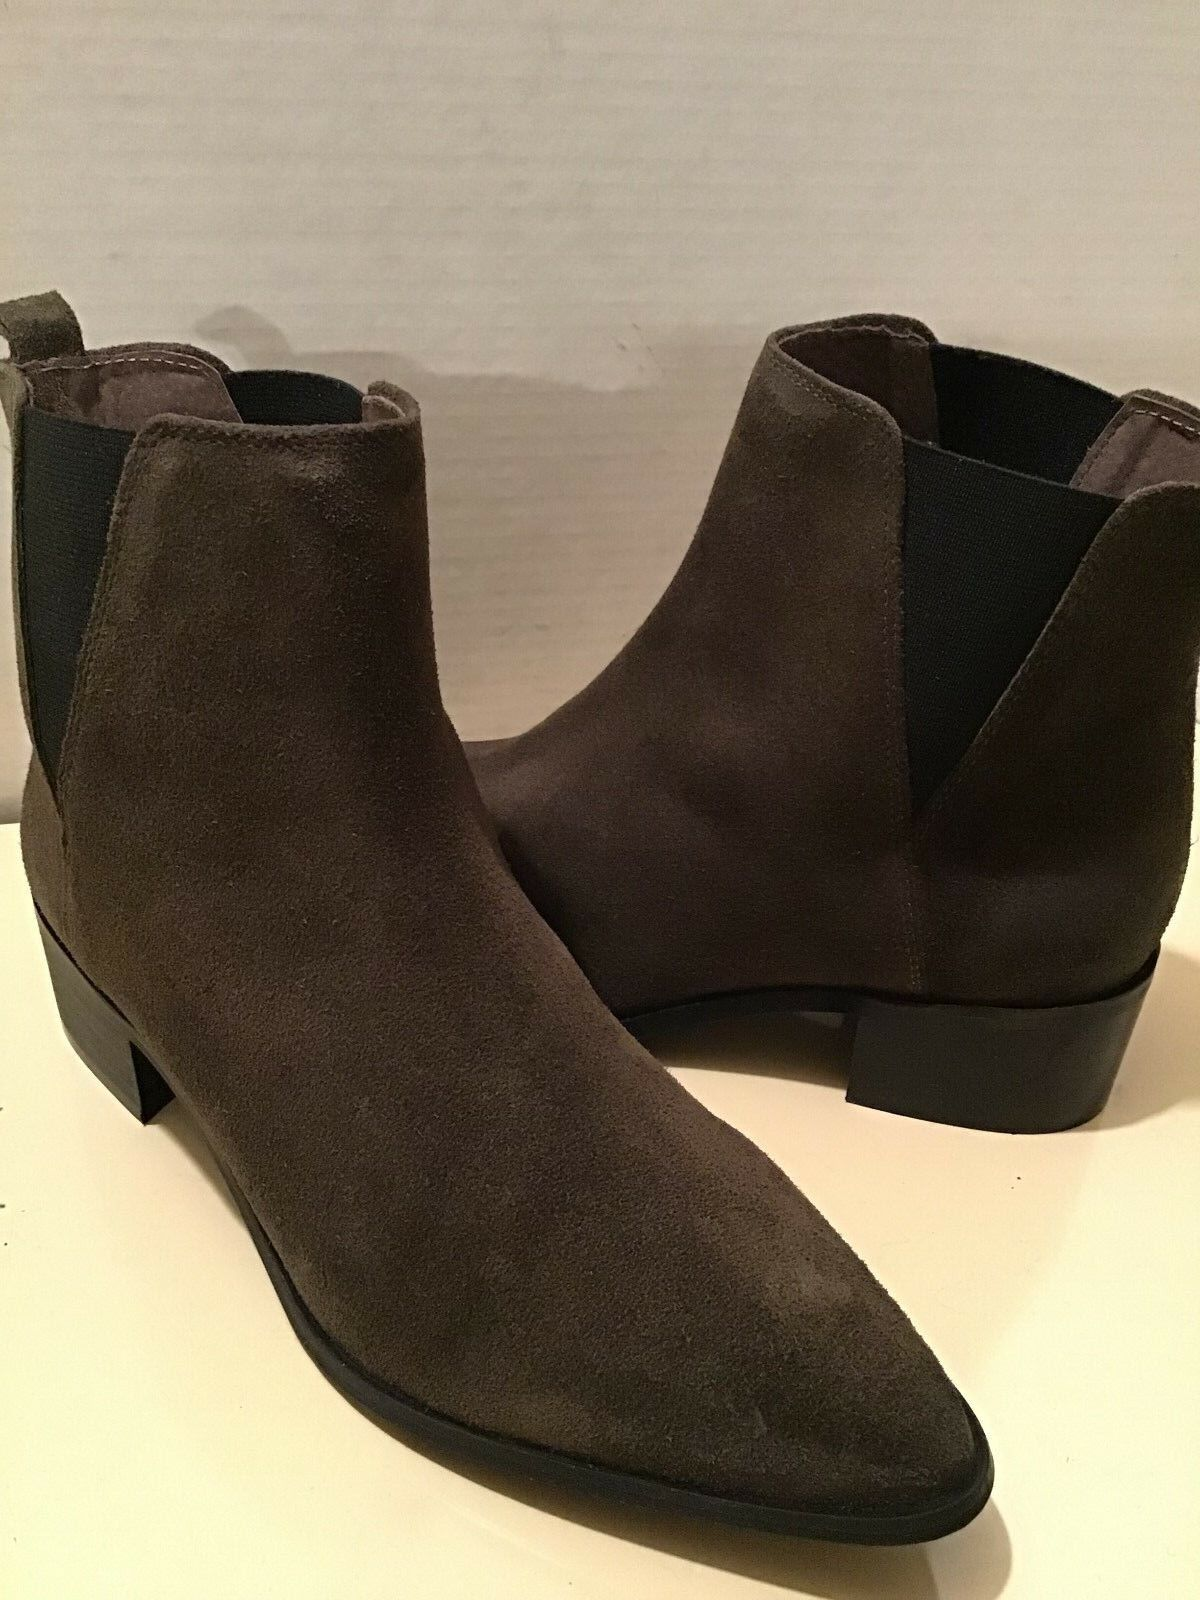 REBELS WOMEN'S BROWN SUEDE ANKLE BOOTS SIZE US 9.5